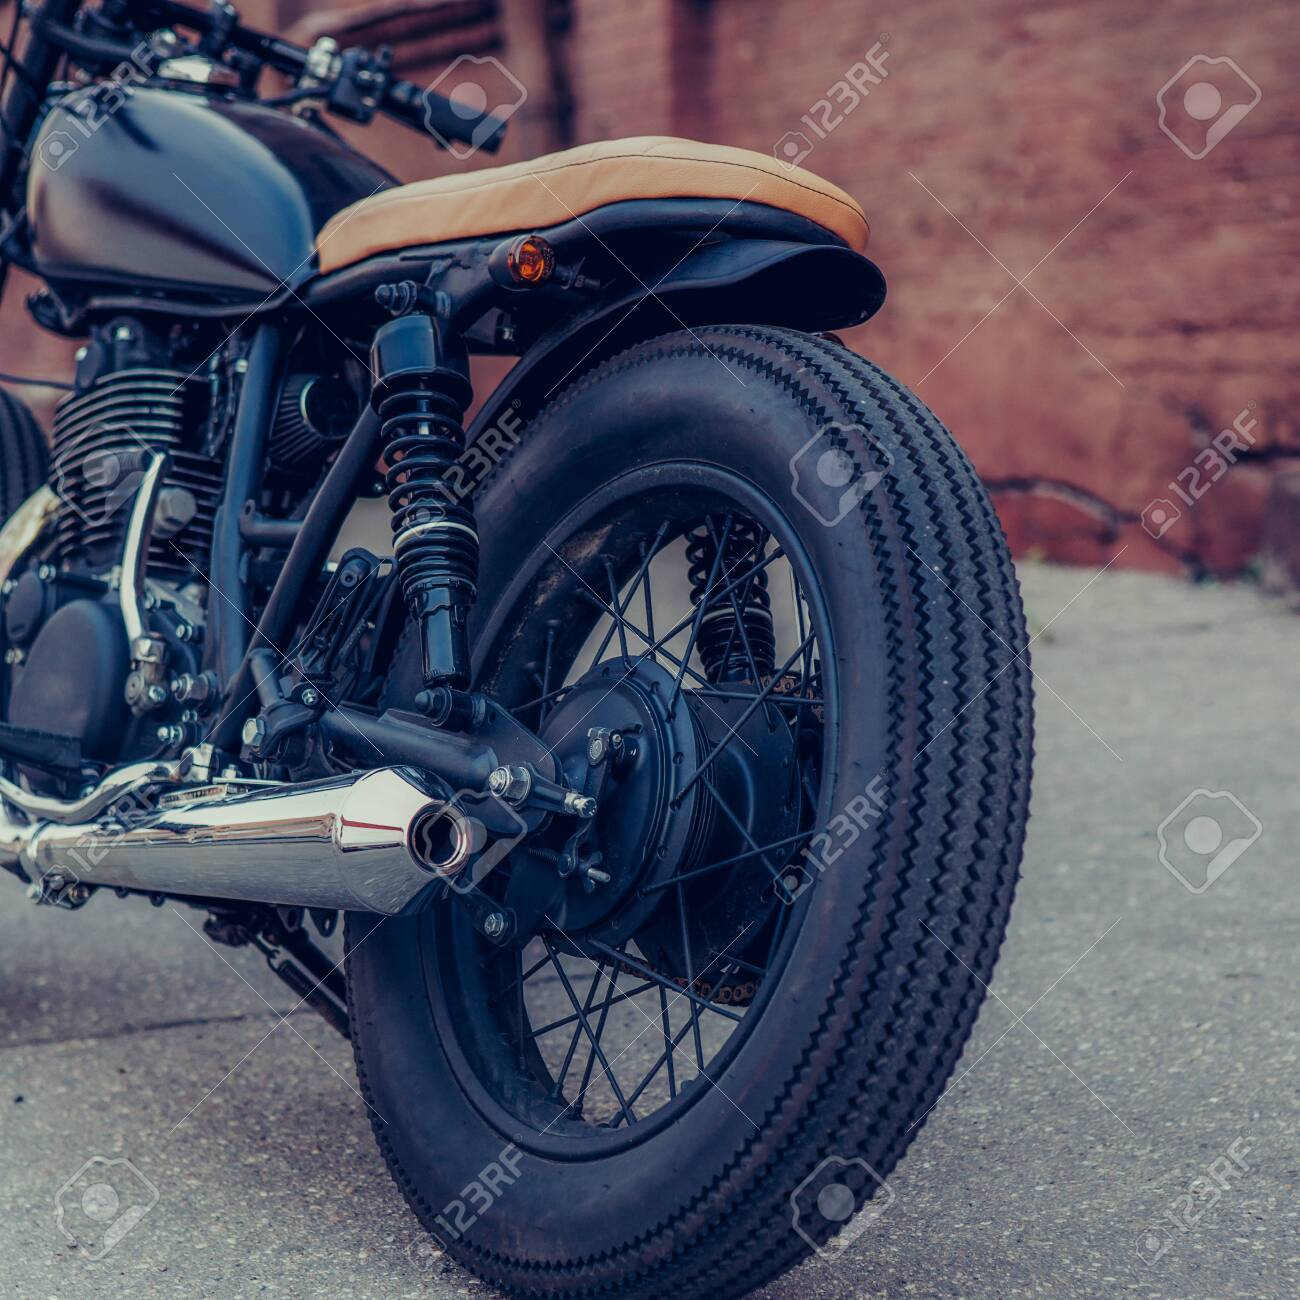 Black Vintage Custom Motorcycle Motorbike Caferacer In Front Stock Photo Picture And Royalty Free Image Image 123667739